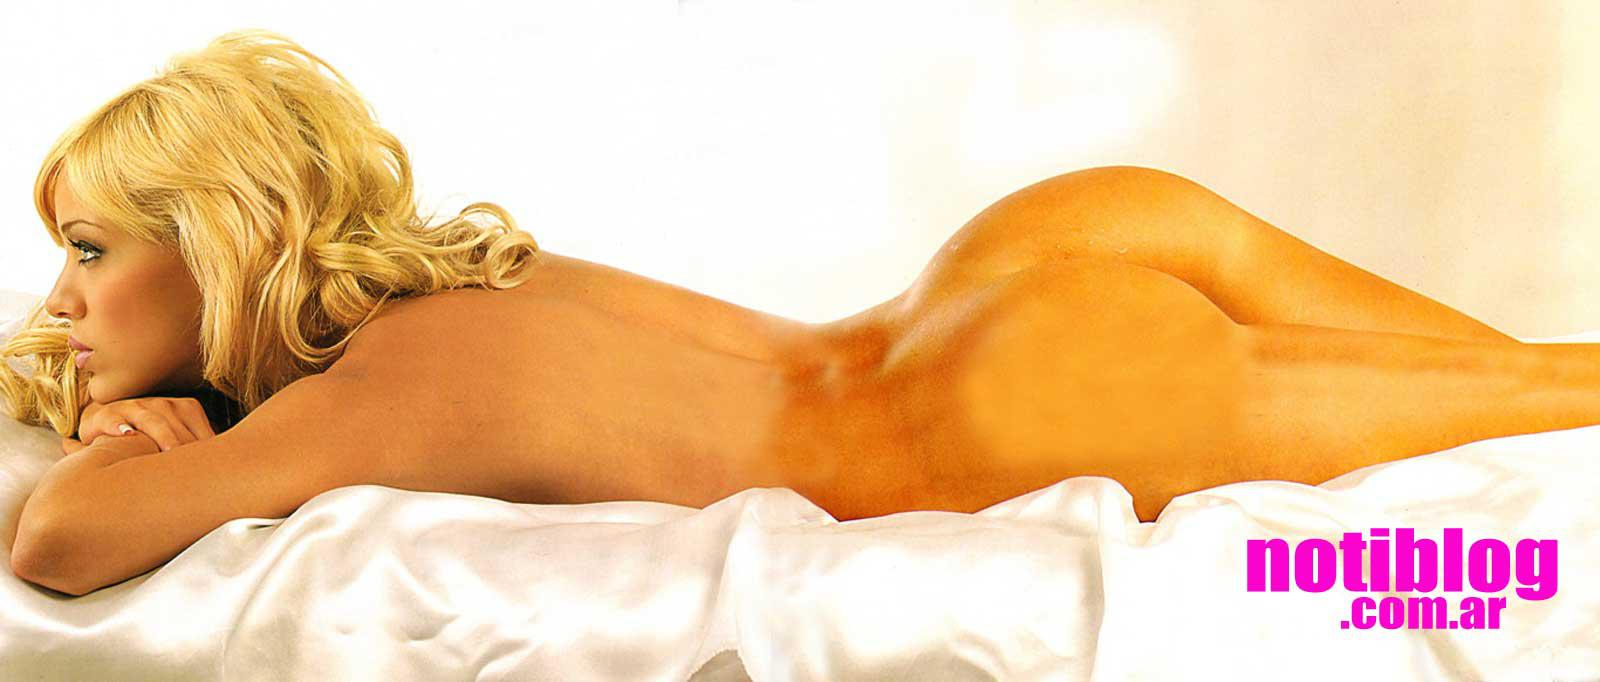 Shaved movie evangelina anderson sex nude coco austin younger